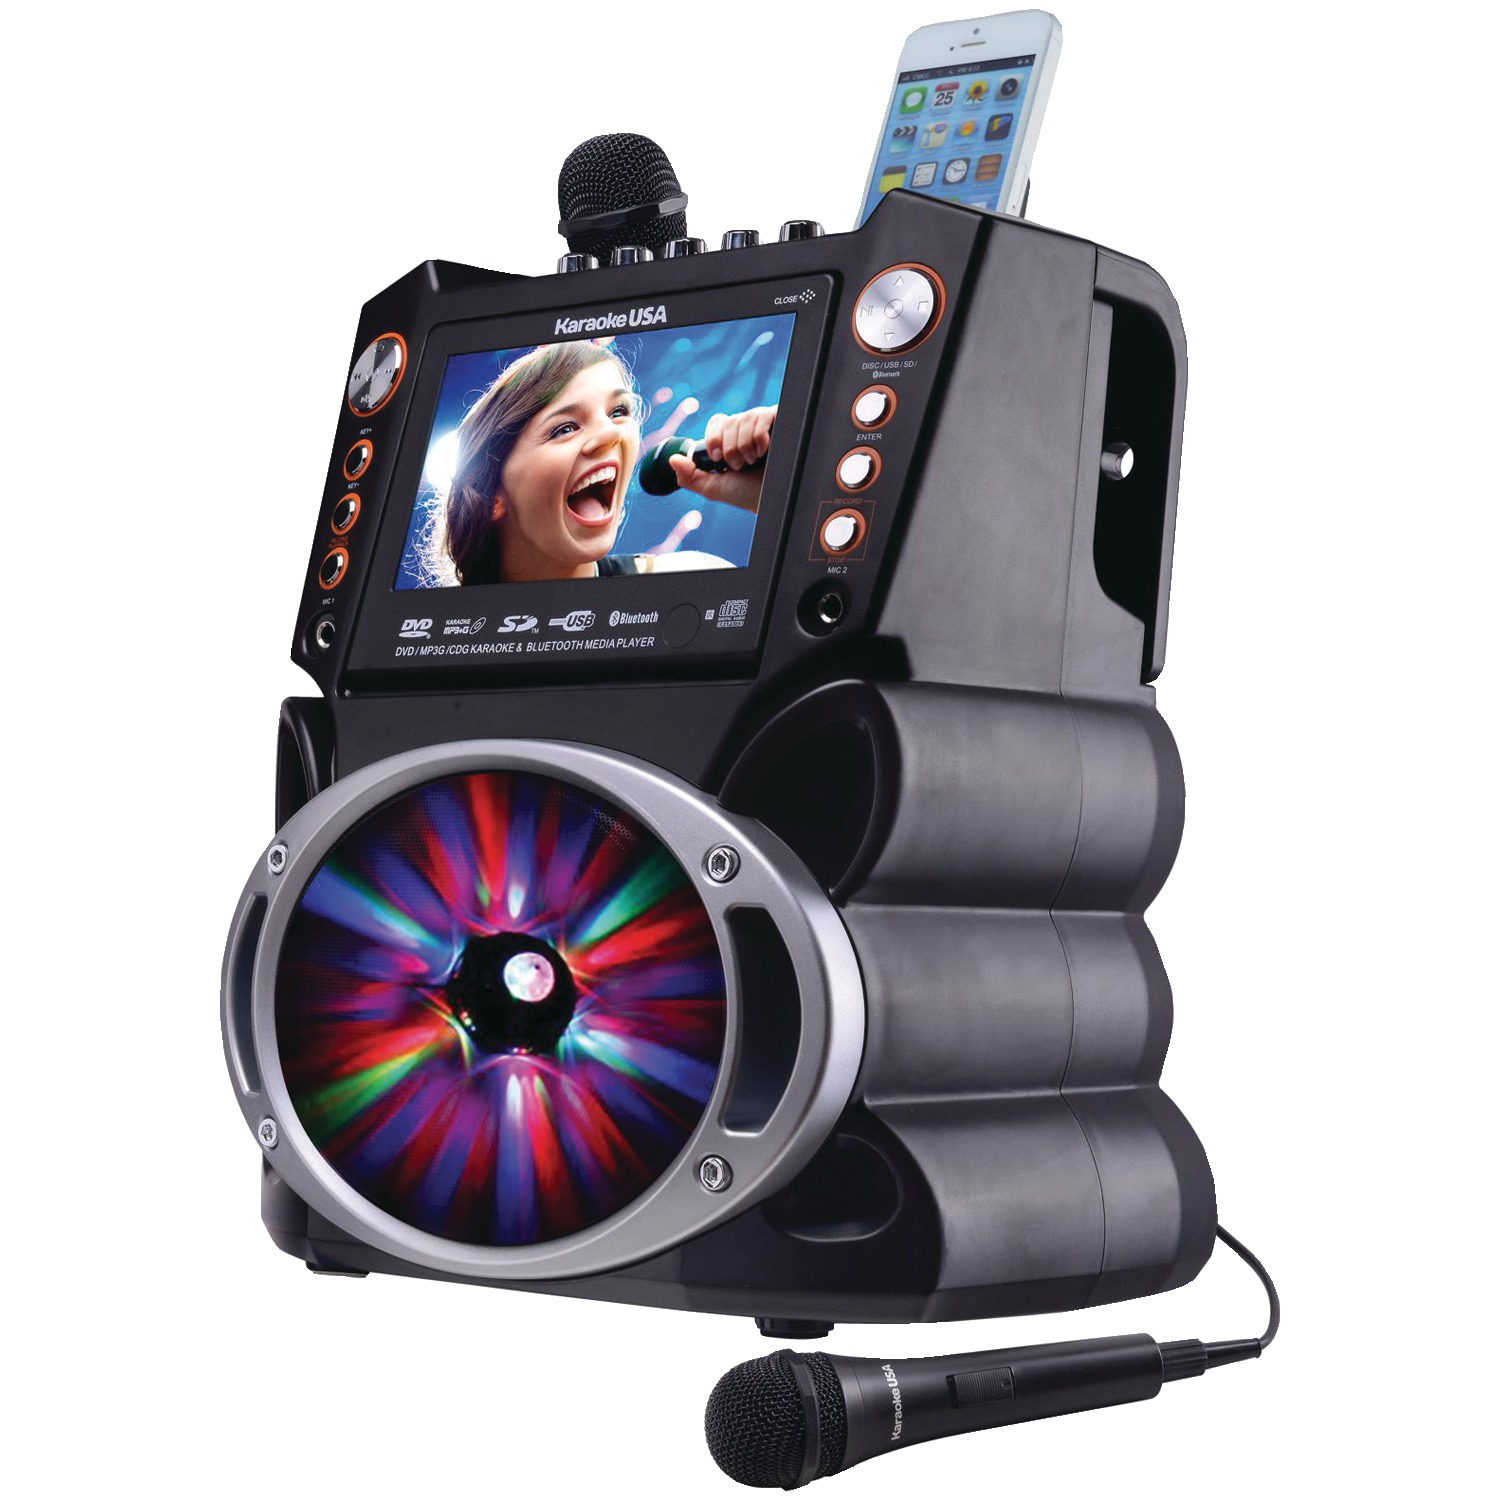 Karaoke USA GF846 Bluetooth Karaoke Machine with Synchronized LEDs by Karaoke USA